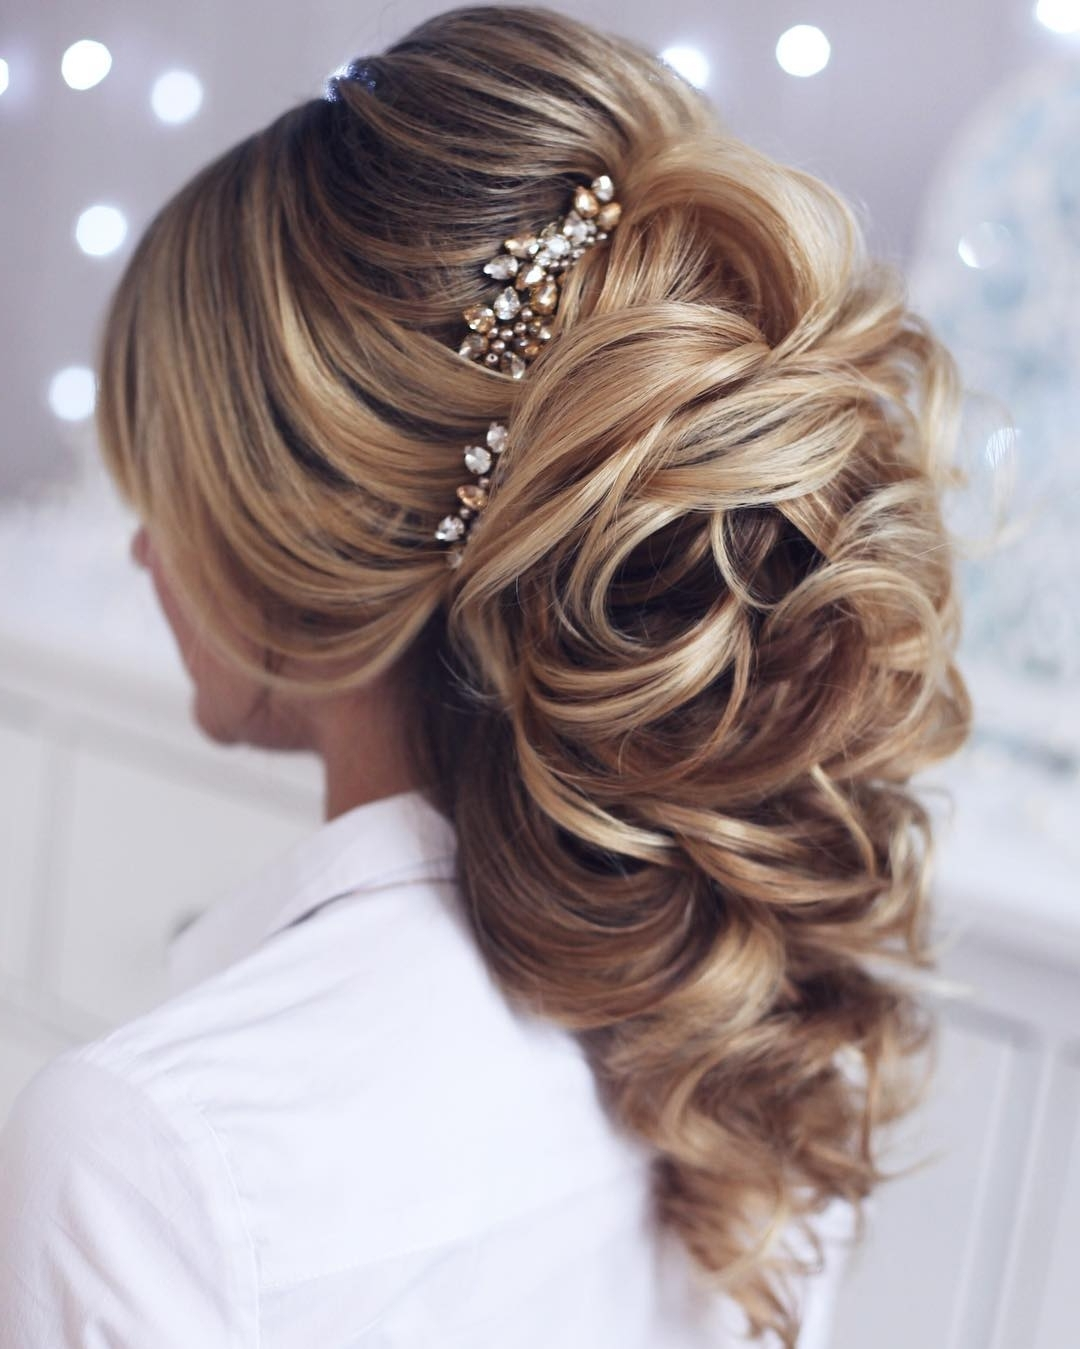 10 Lavish Wedding Hairstyles For Long Hair – Wedding Hairstyle Ideas Inside Fashionable Relaxed Wedding Hairstyles (View 10 of 15)